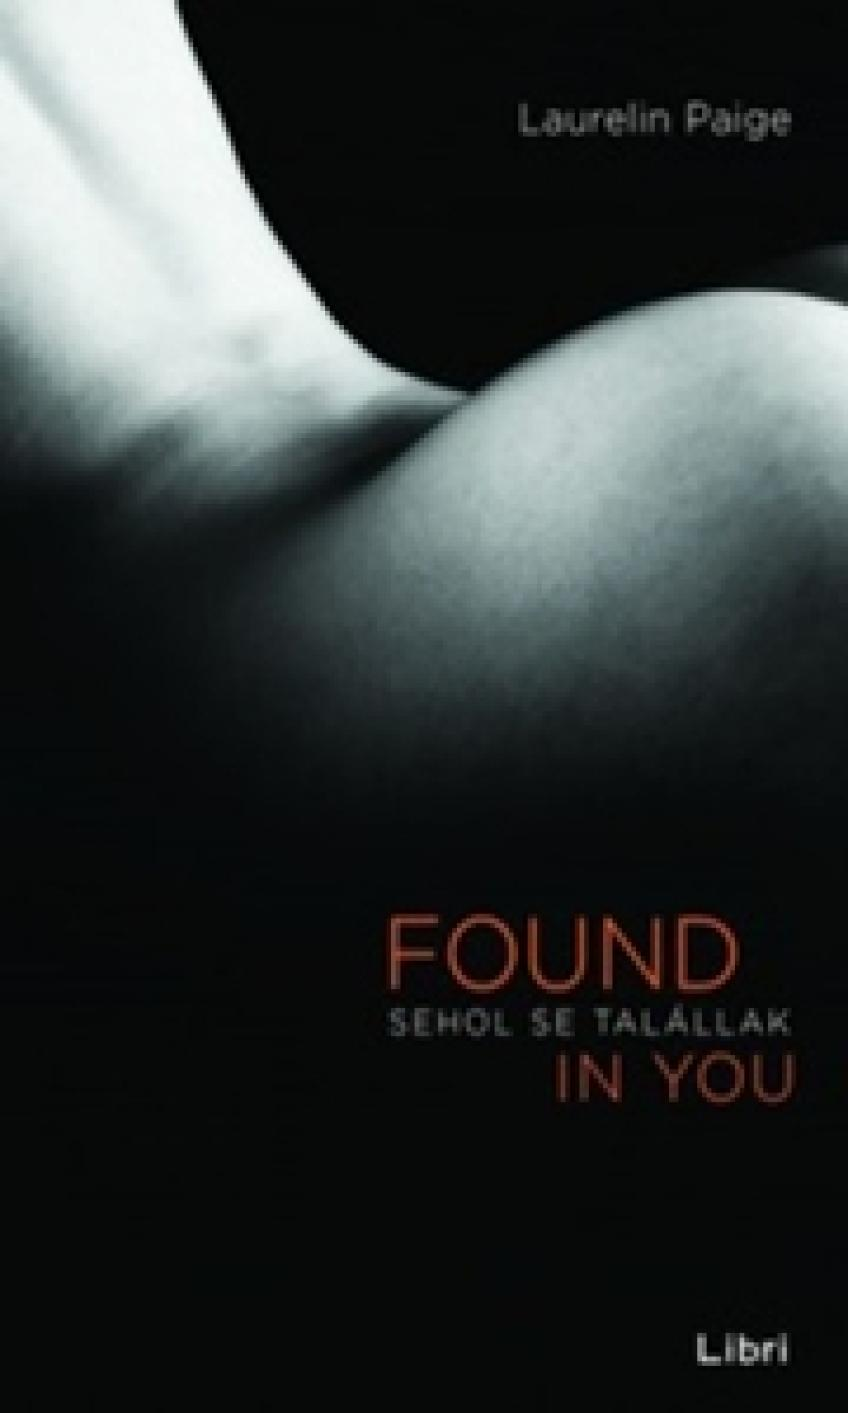 Laurelin Paige - Sehol se talállak - Found in You